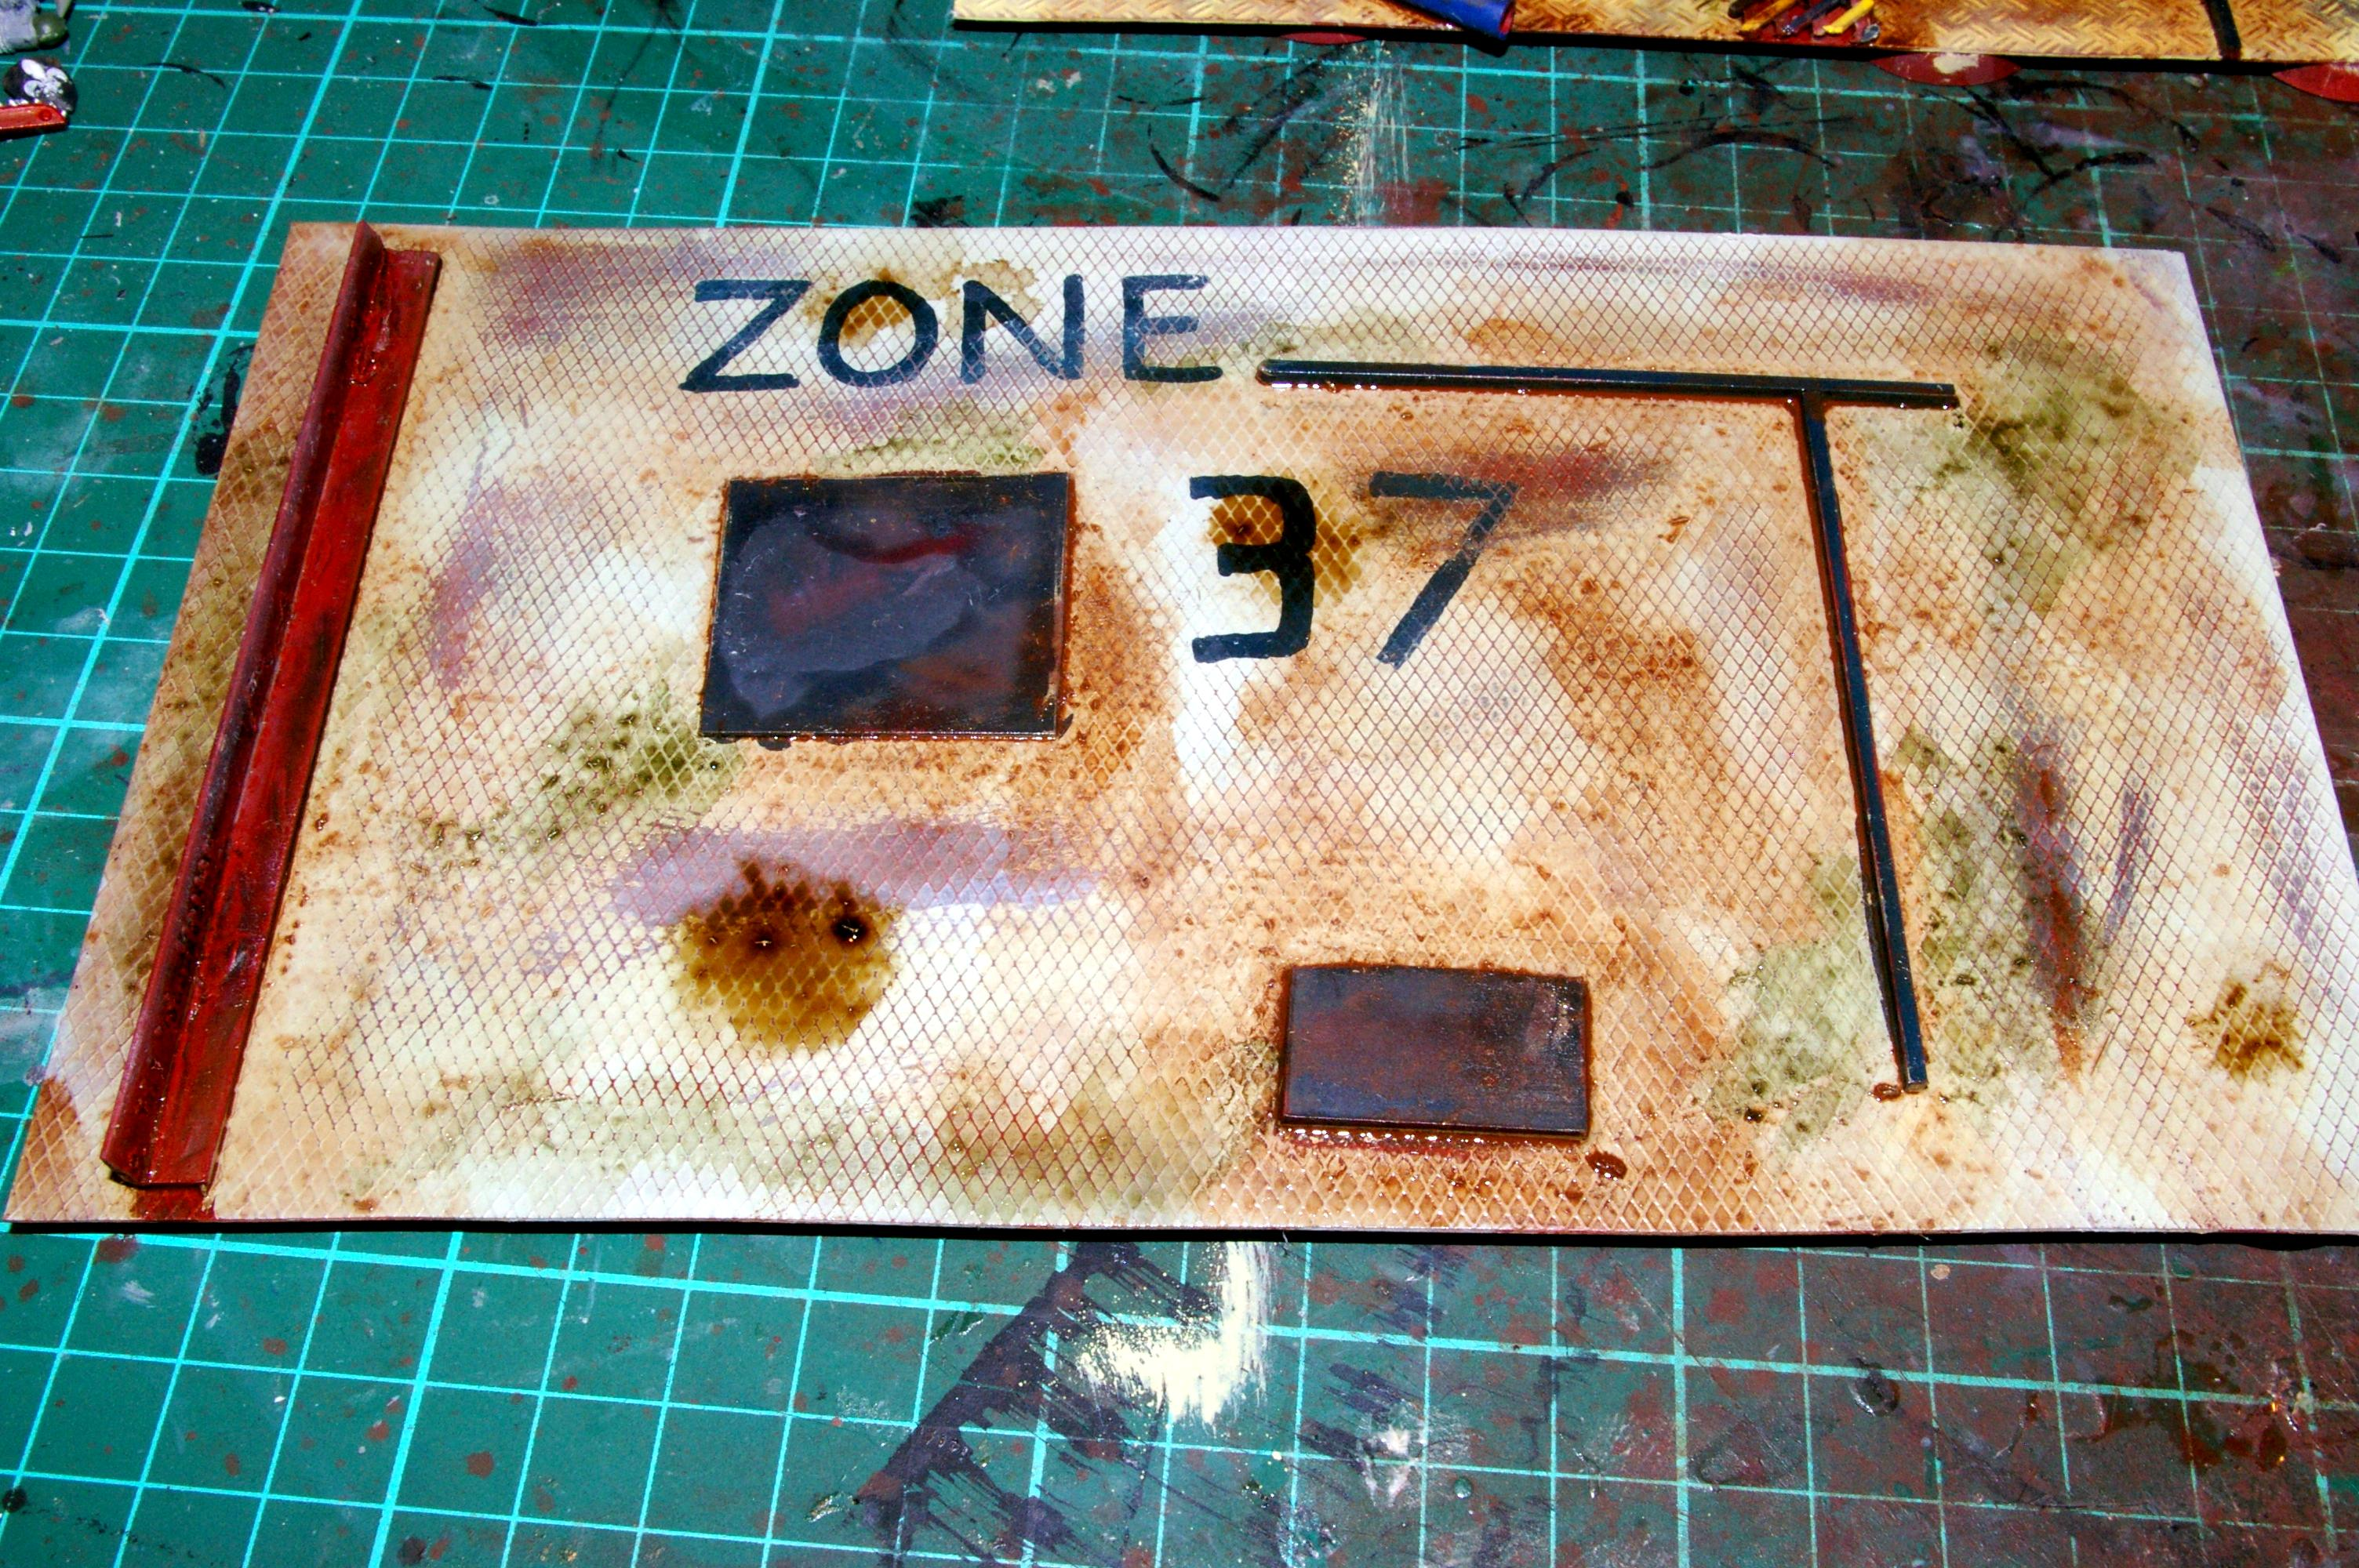 Weathering effects added